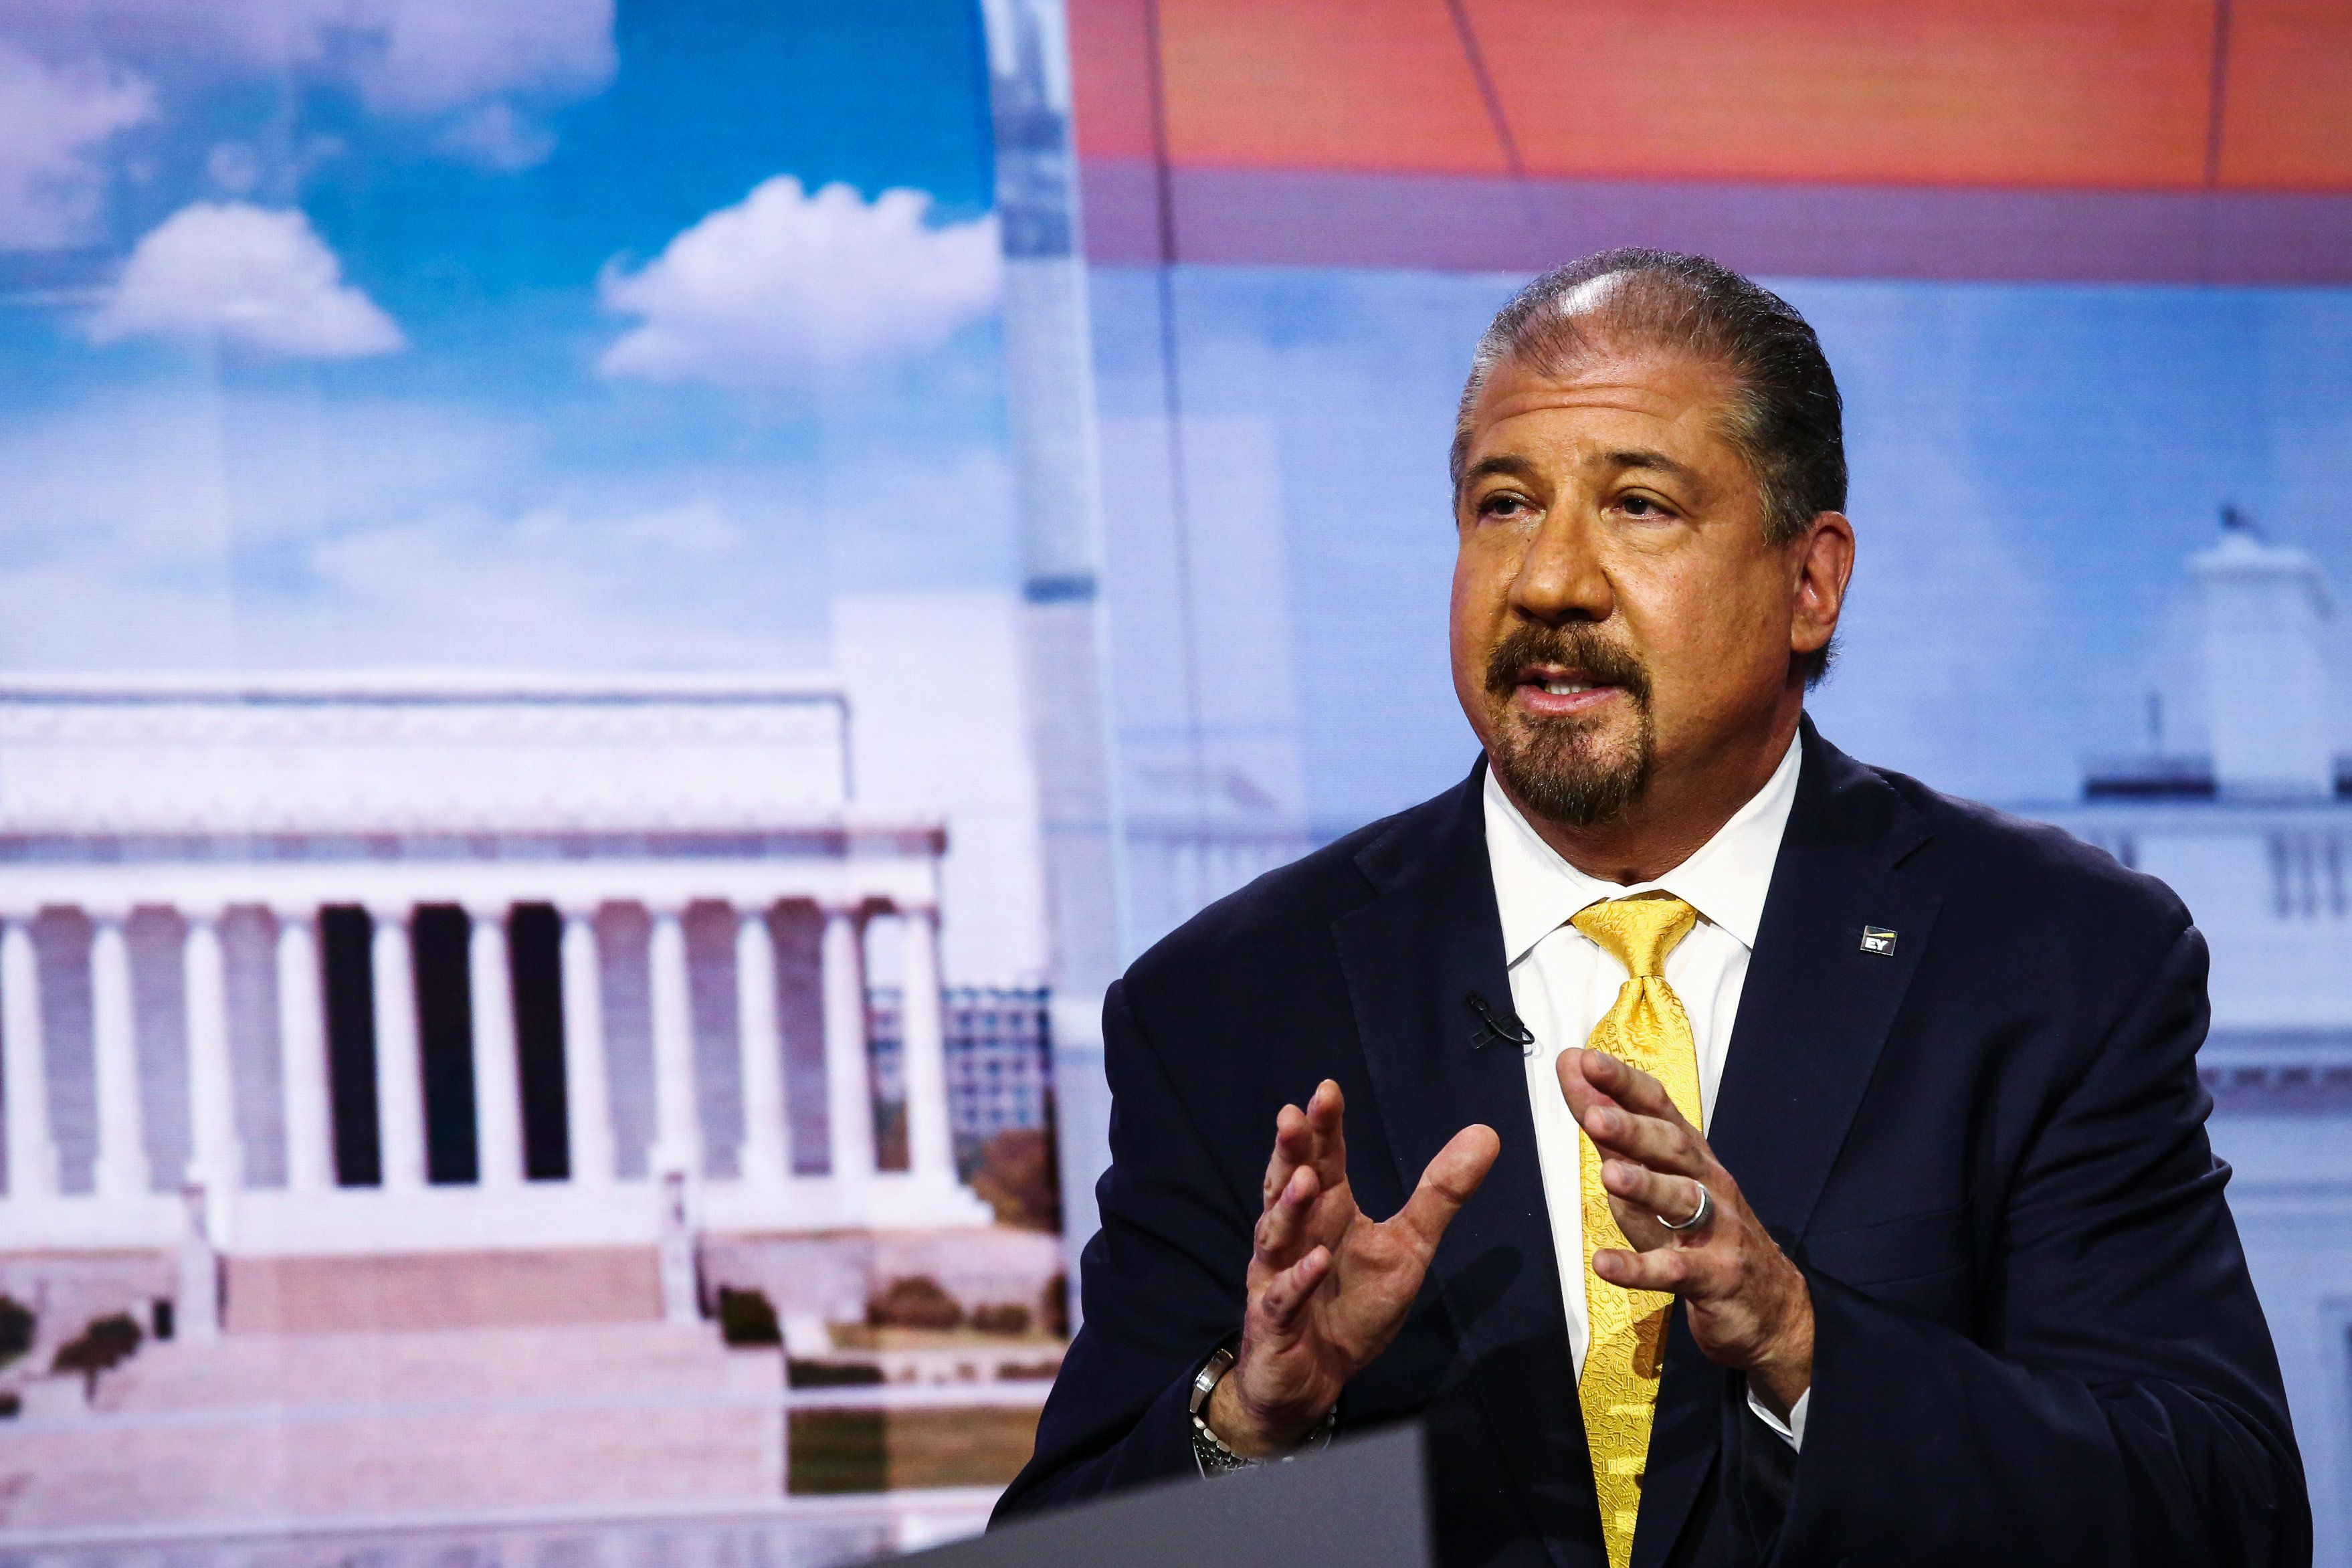 Ernst & Young CEO Mark Weinberger has spoken publicly about his commitment to gender equality but has not said anything a